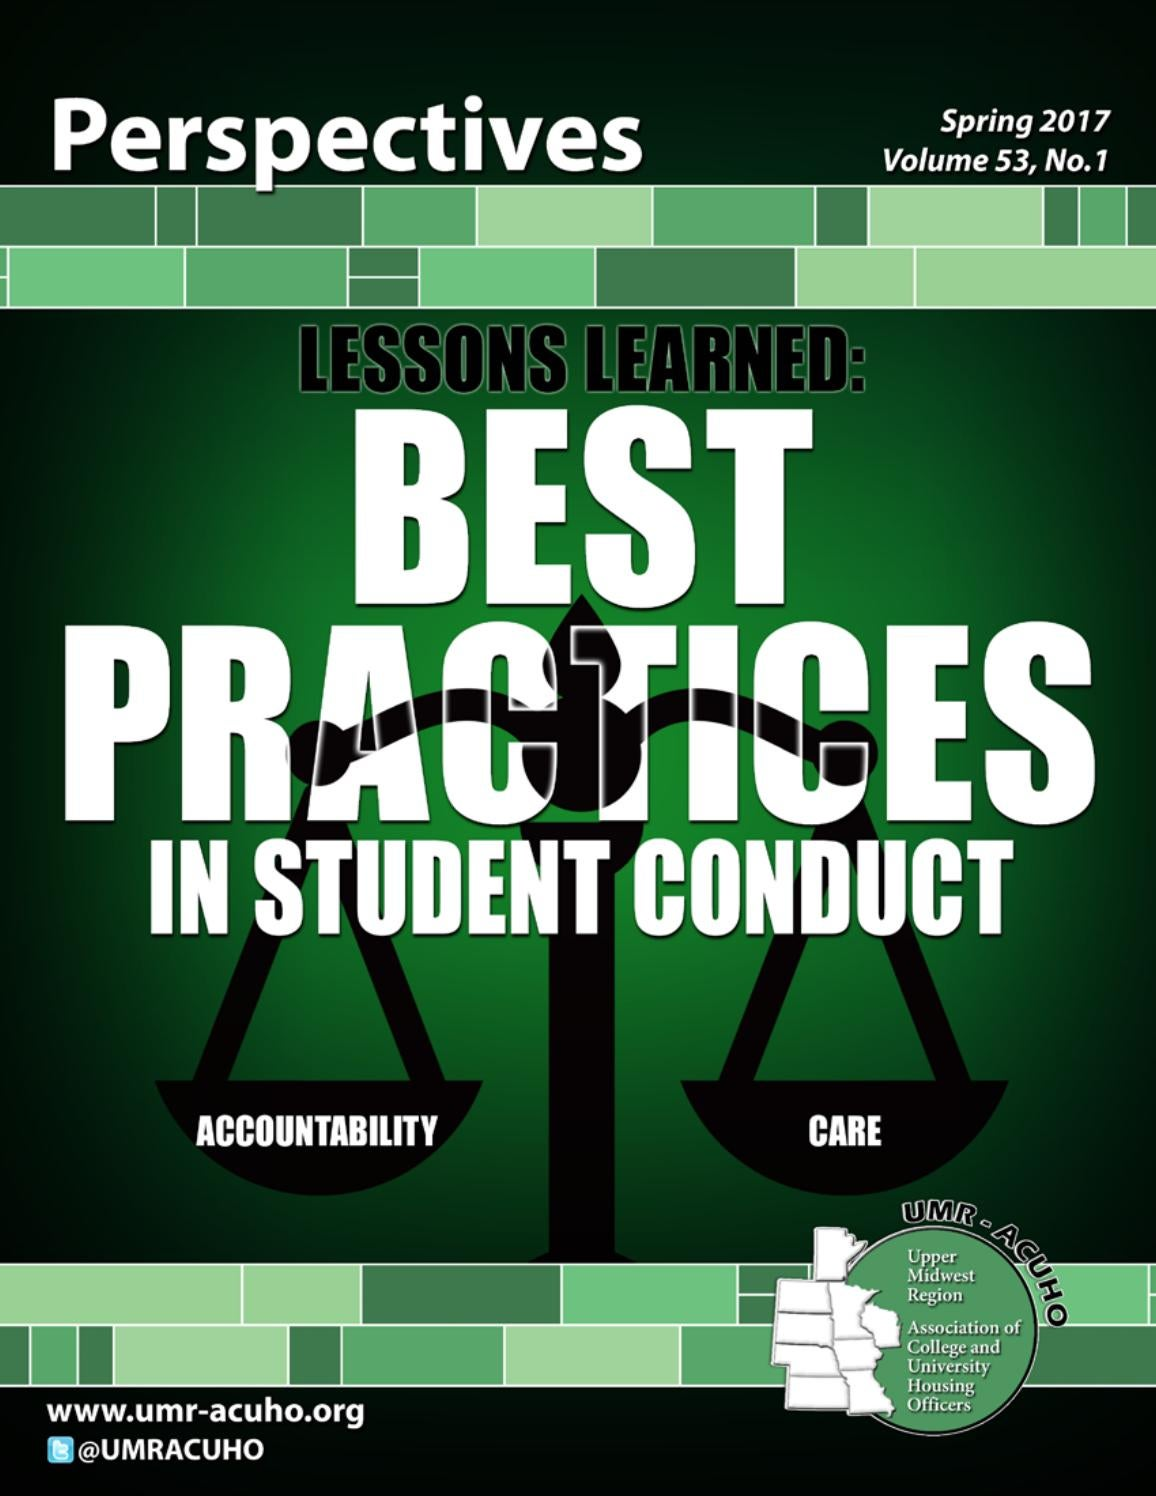 Spring 2017 Perspectives by UMR-ACUHO Perspectives - issuu